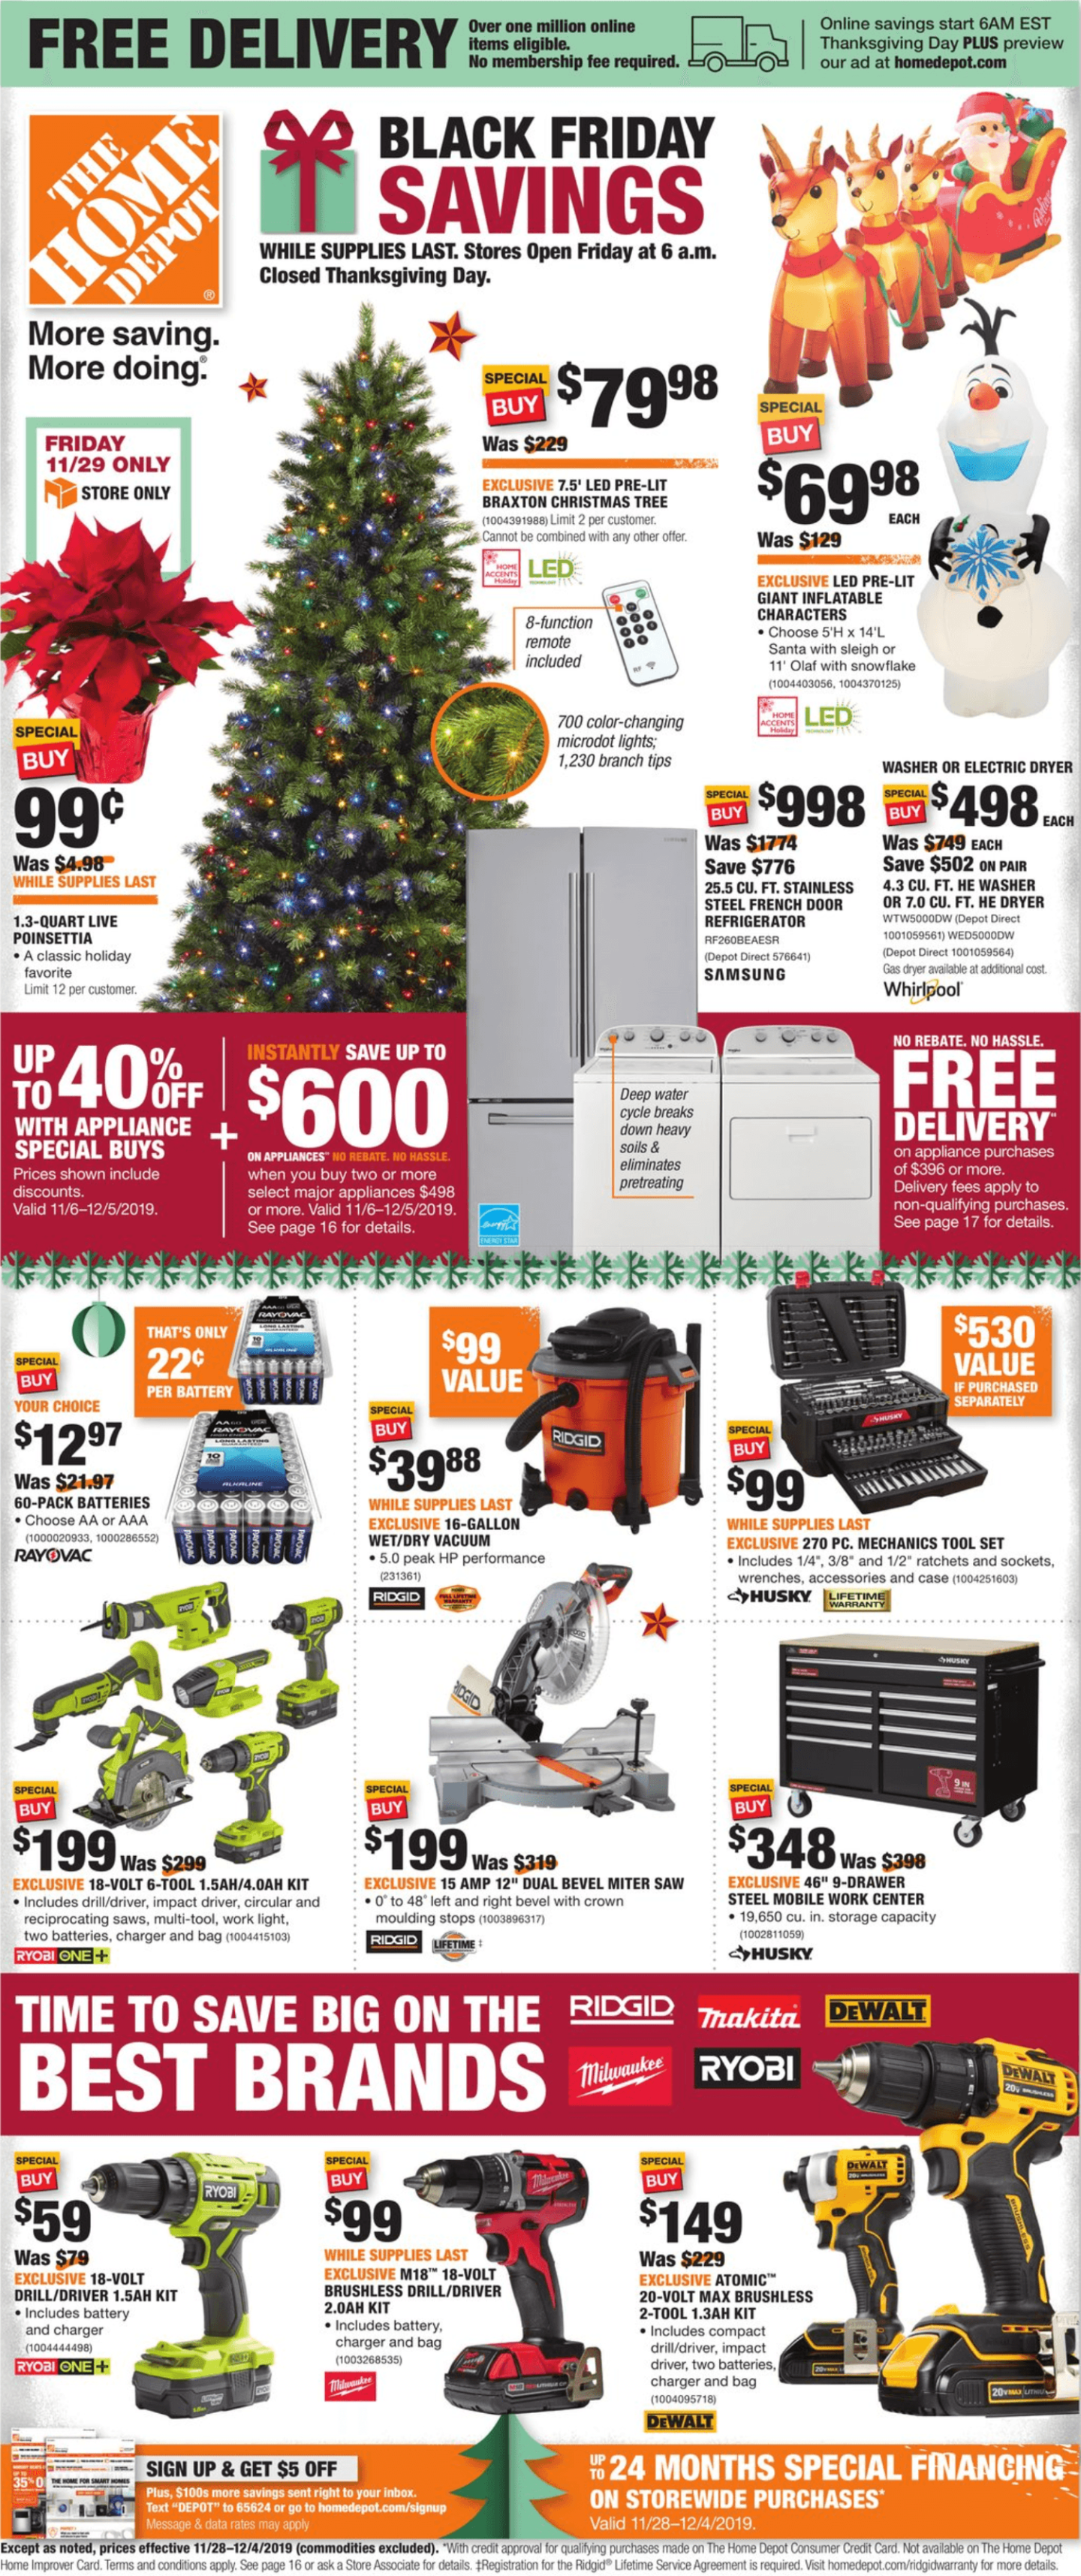 Home Depot Black Friday Deals 2019